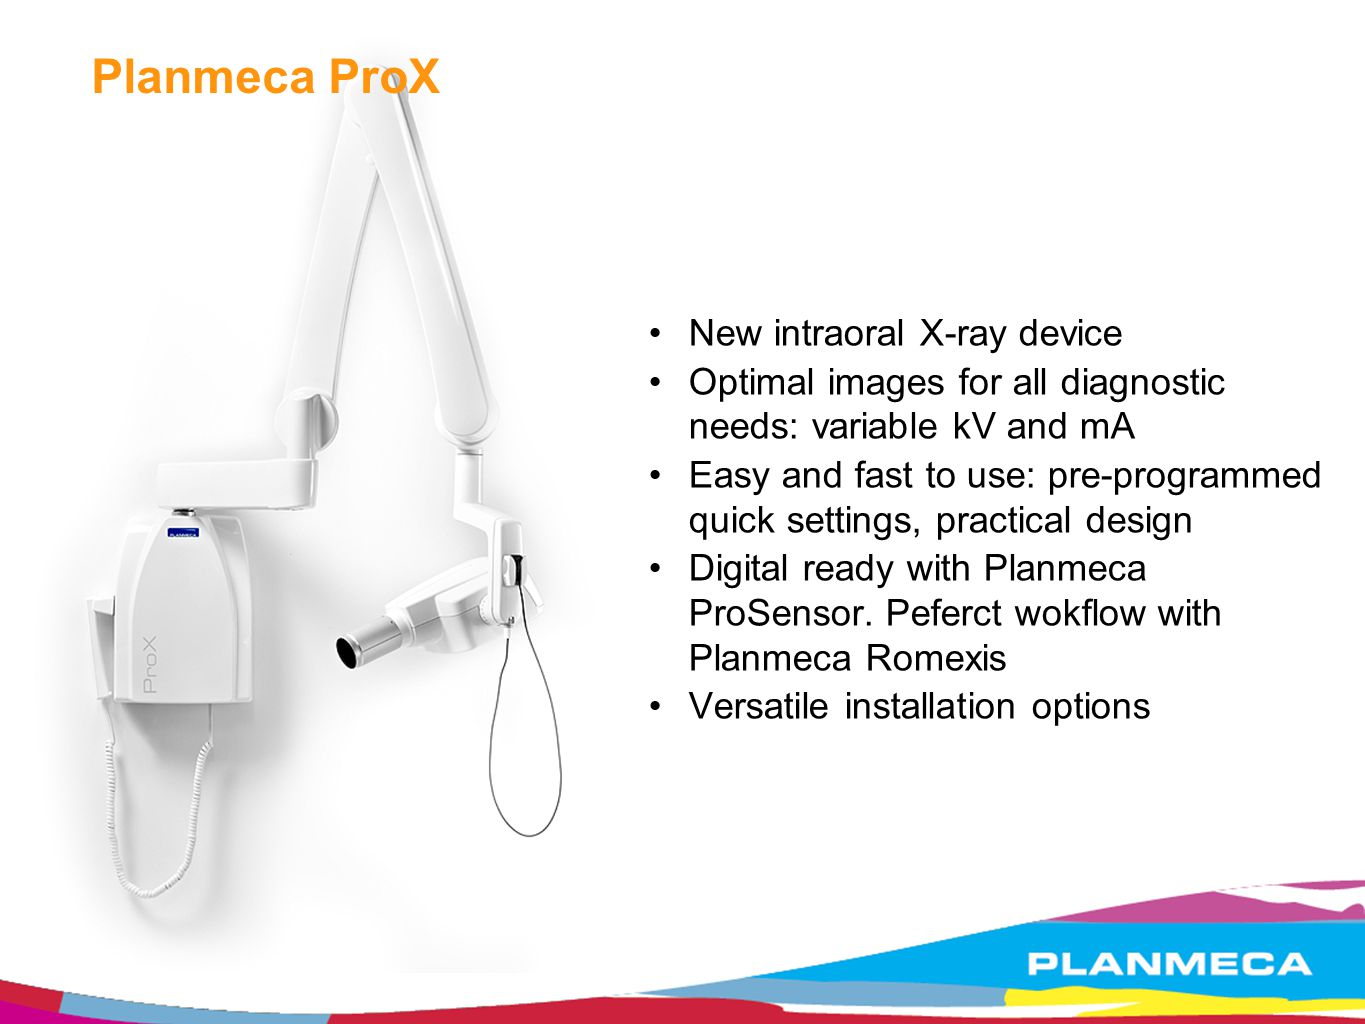 Planmeca ProX New intraoral X-ray device